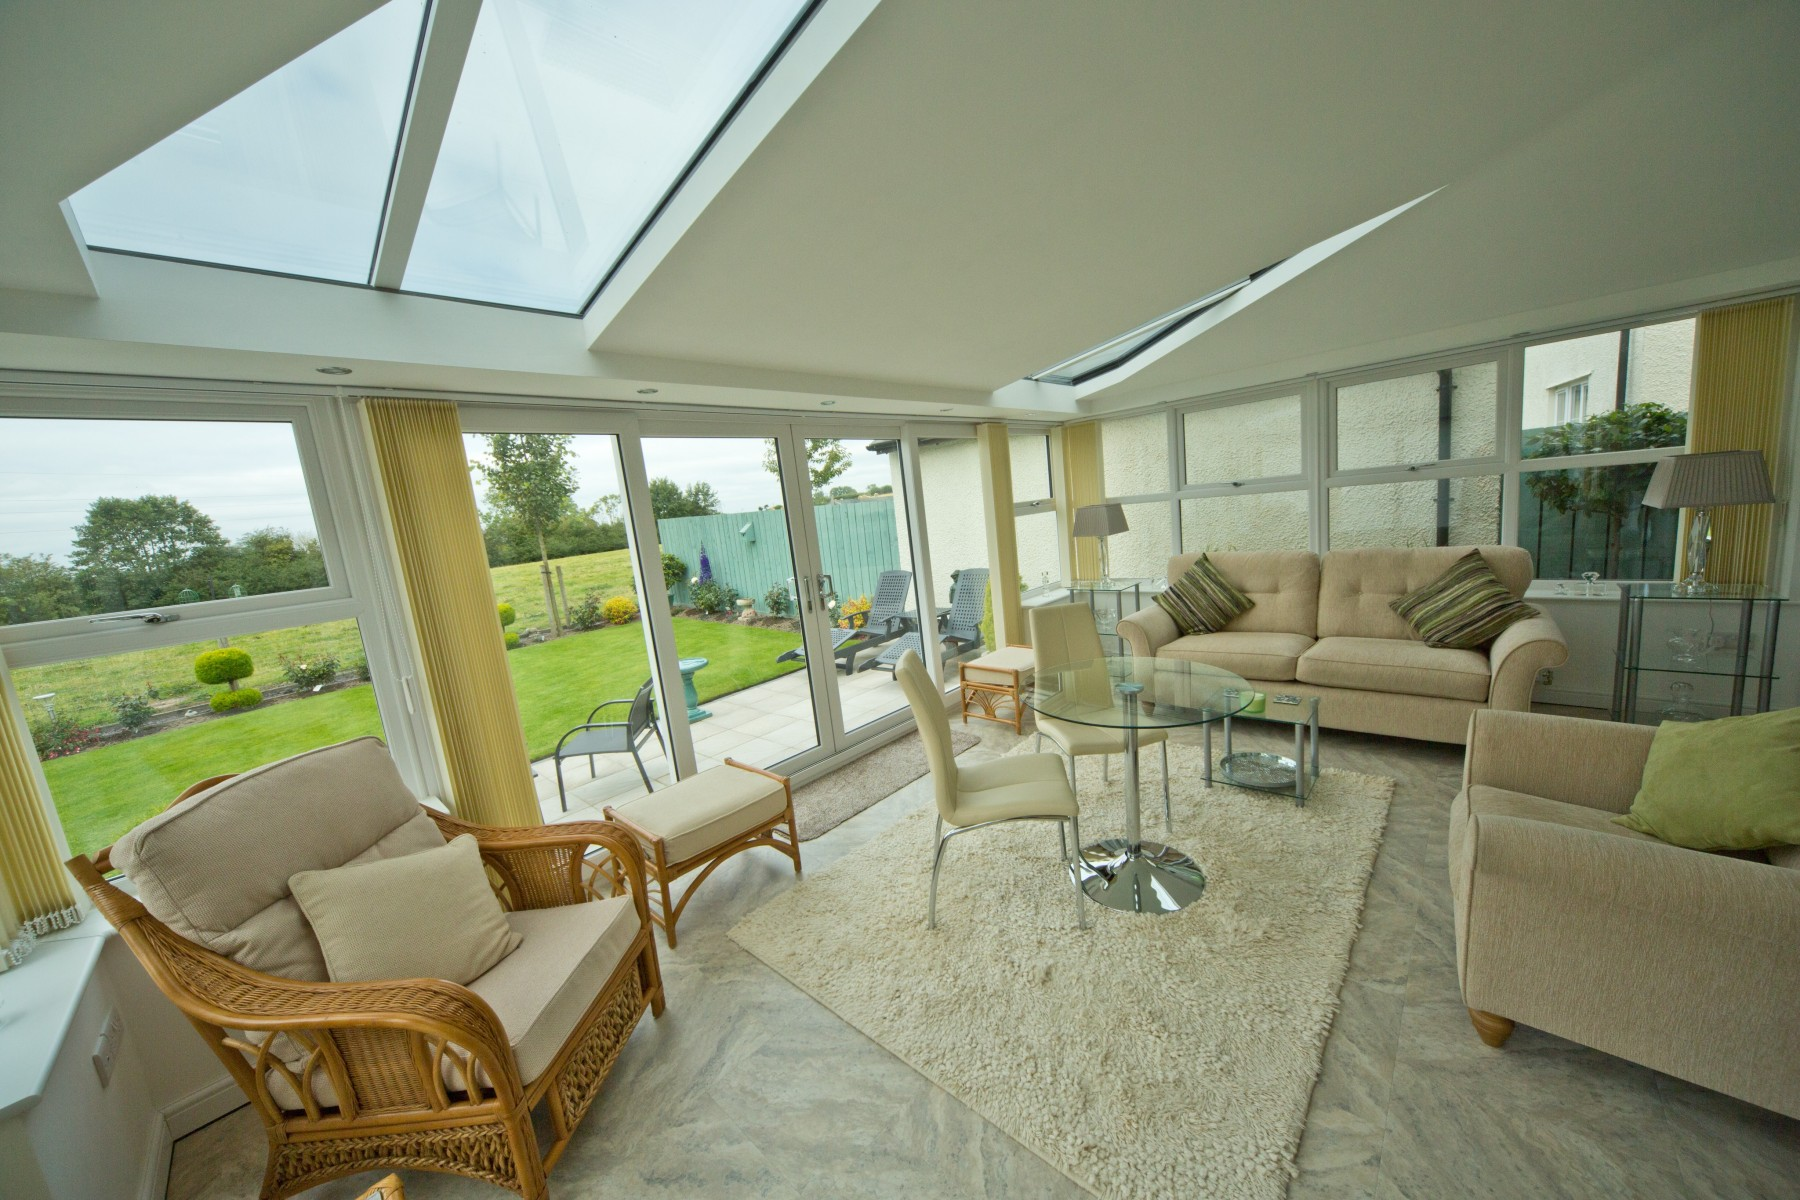 Livinroof Is A Conservatory Roof Style From Ultraframe